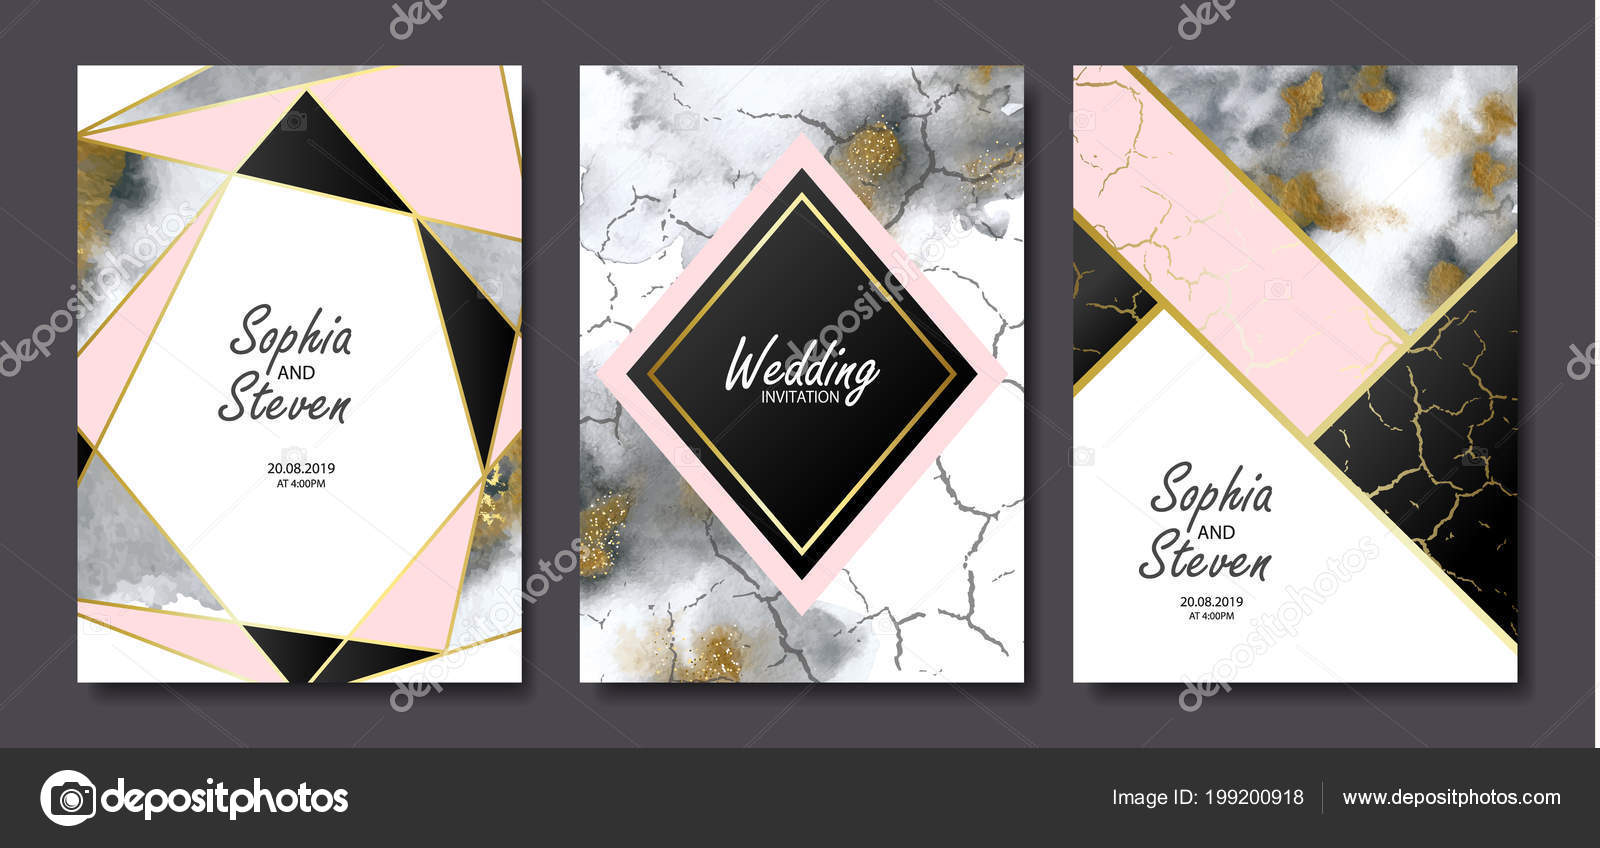 Wedding invitation cards gold grey marble watercolor texture wedding invitation cards with gold and grey marble watercolor texture and geometric shapesctor illustration vetor de infectsiyail stopboris Image collections